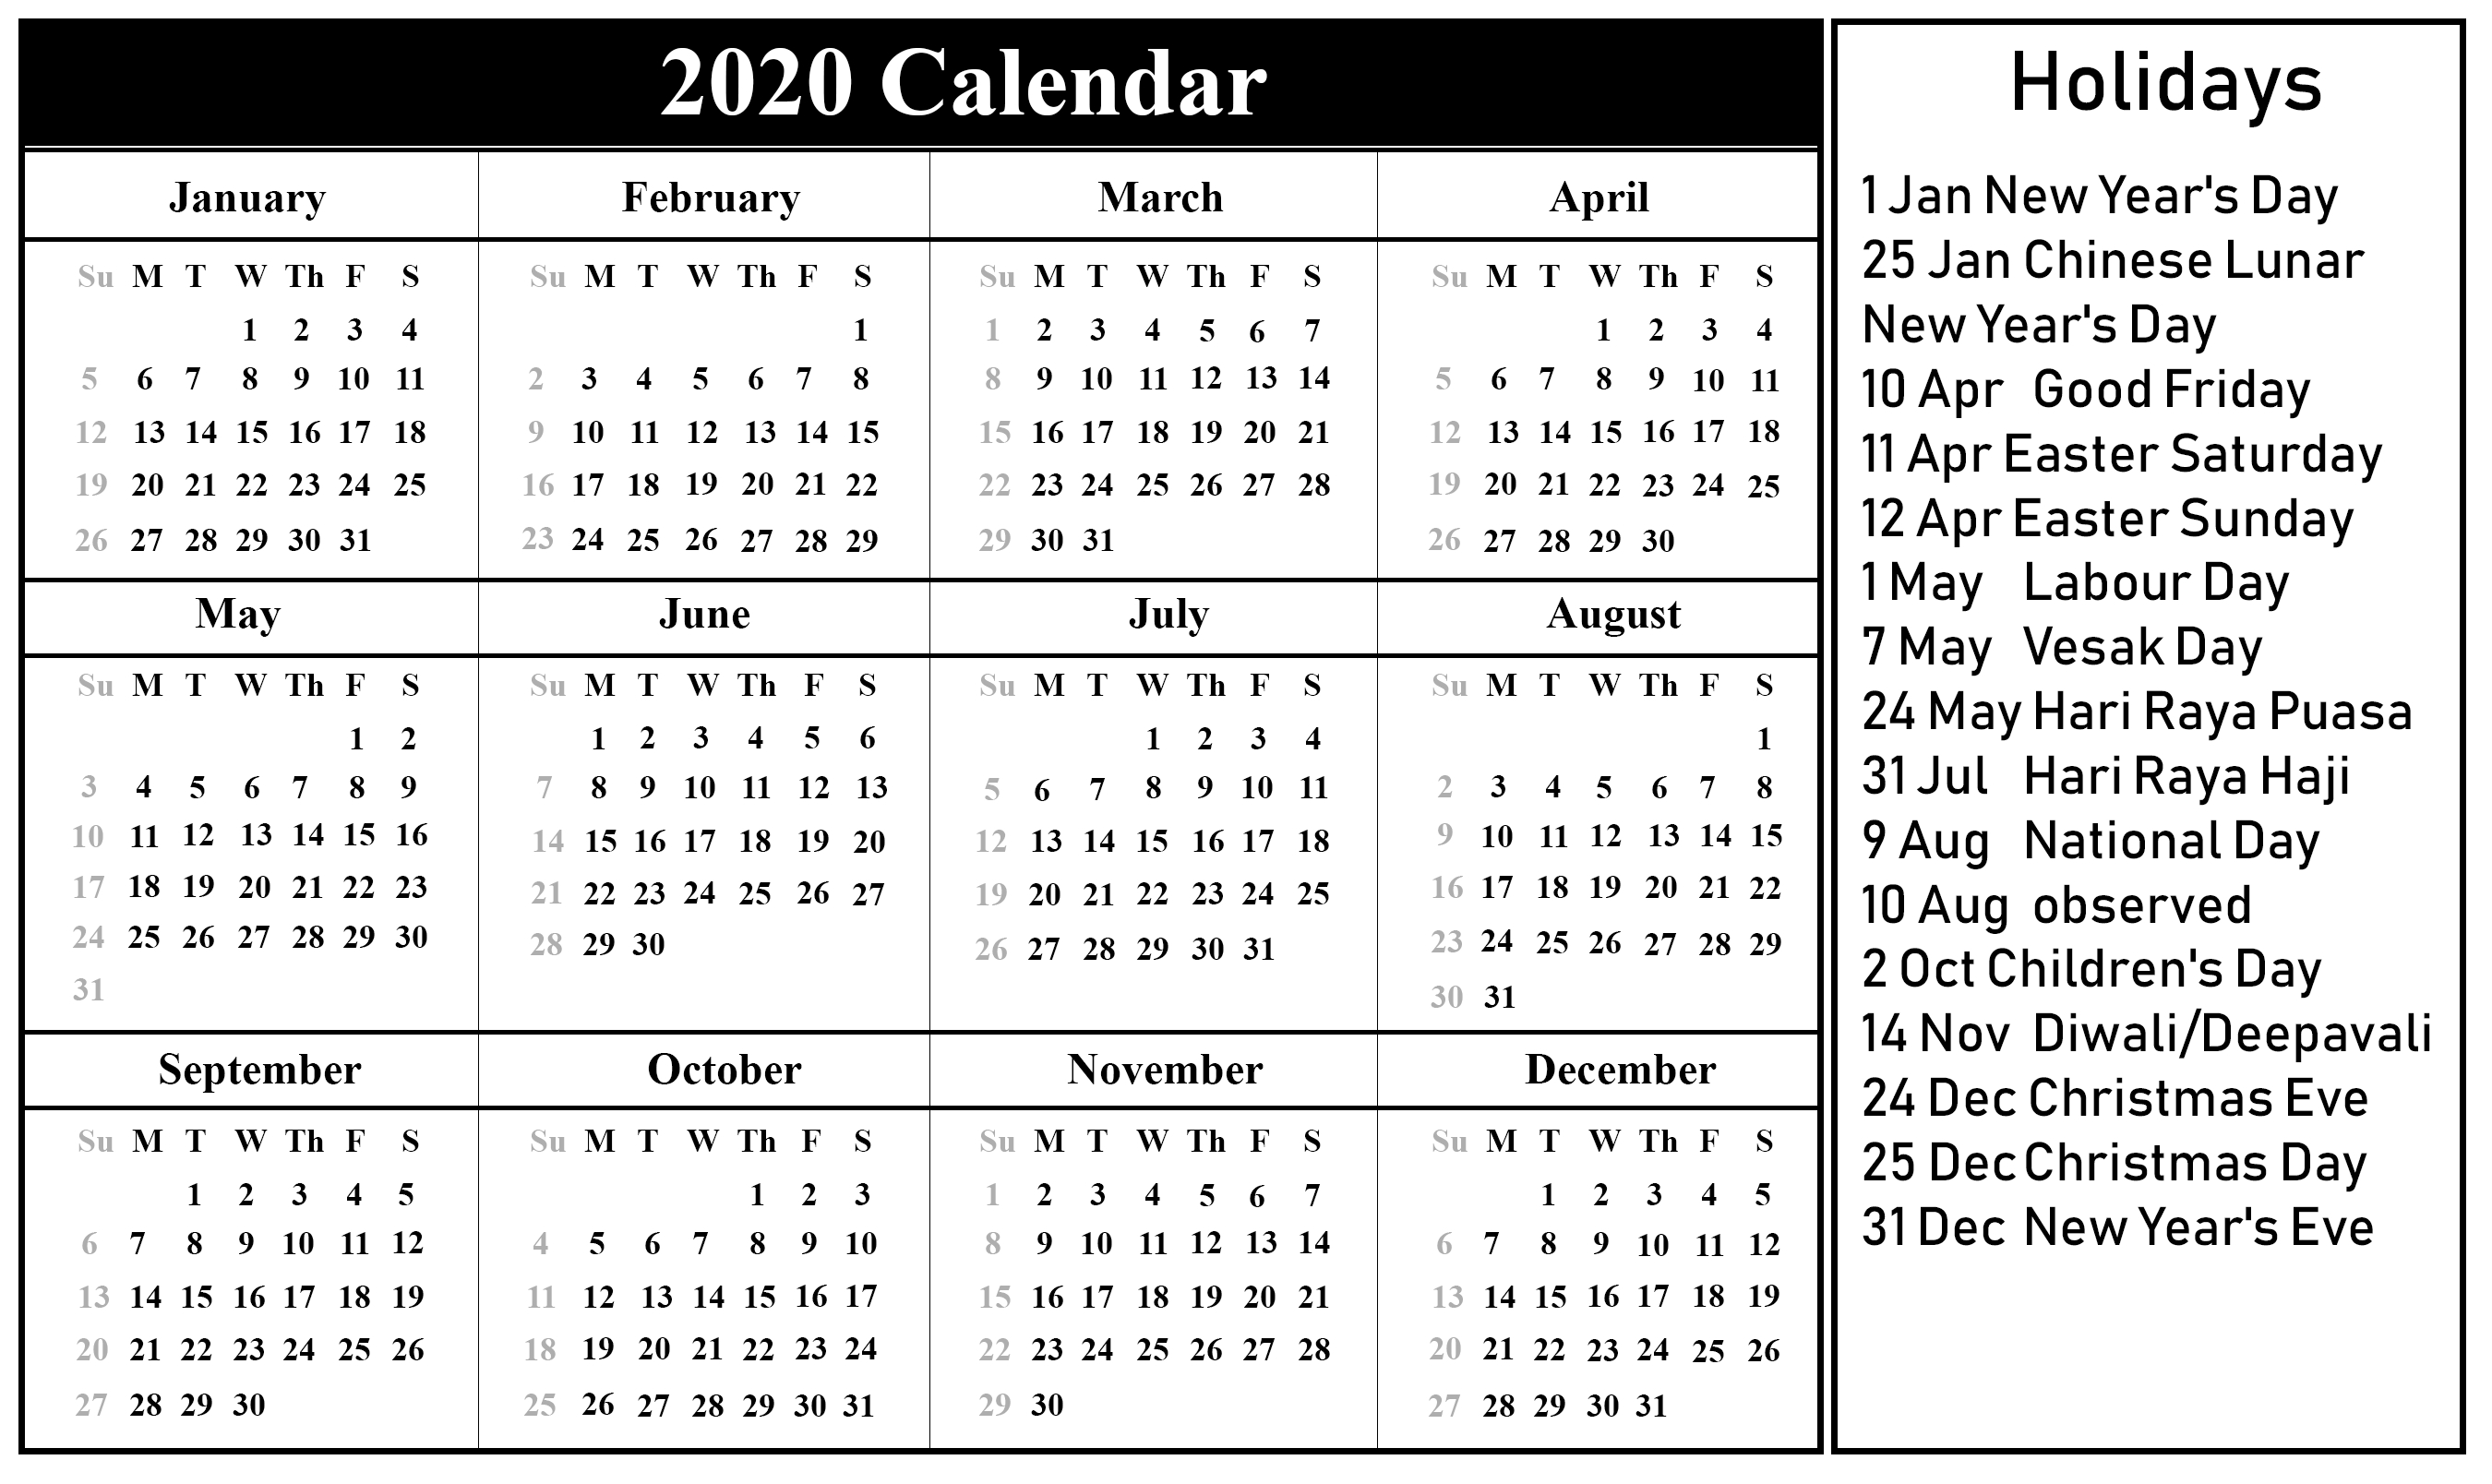 Printable 2020 Calendar With Holidays | Monthly Calendar in Free Printable 2020 Calendar With Holidays